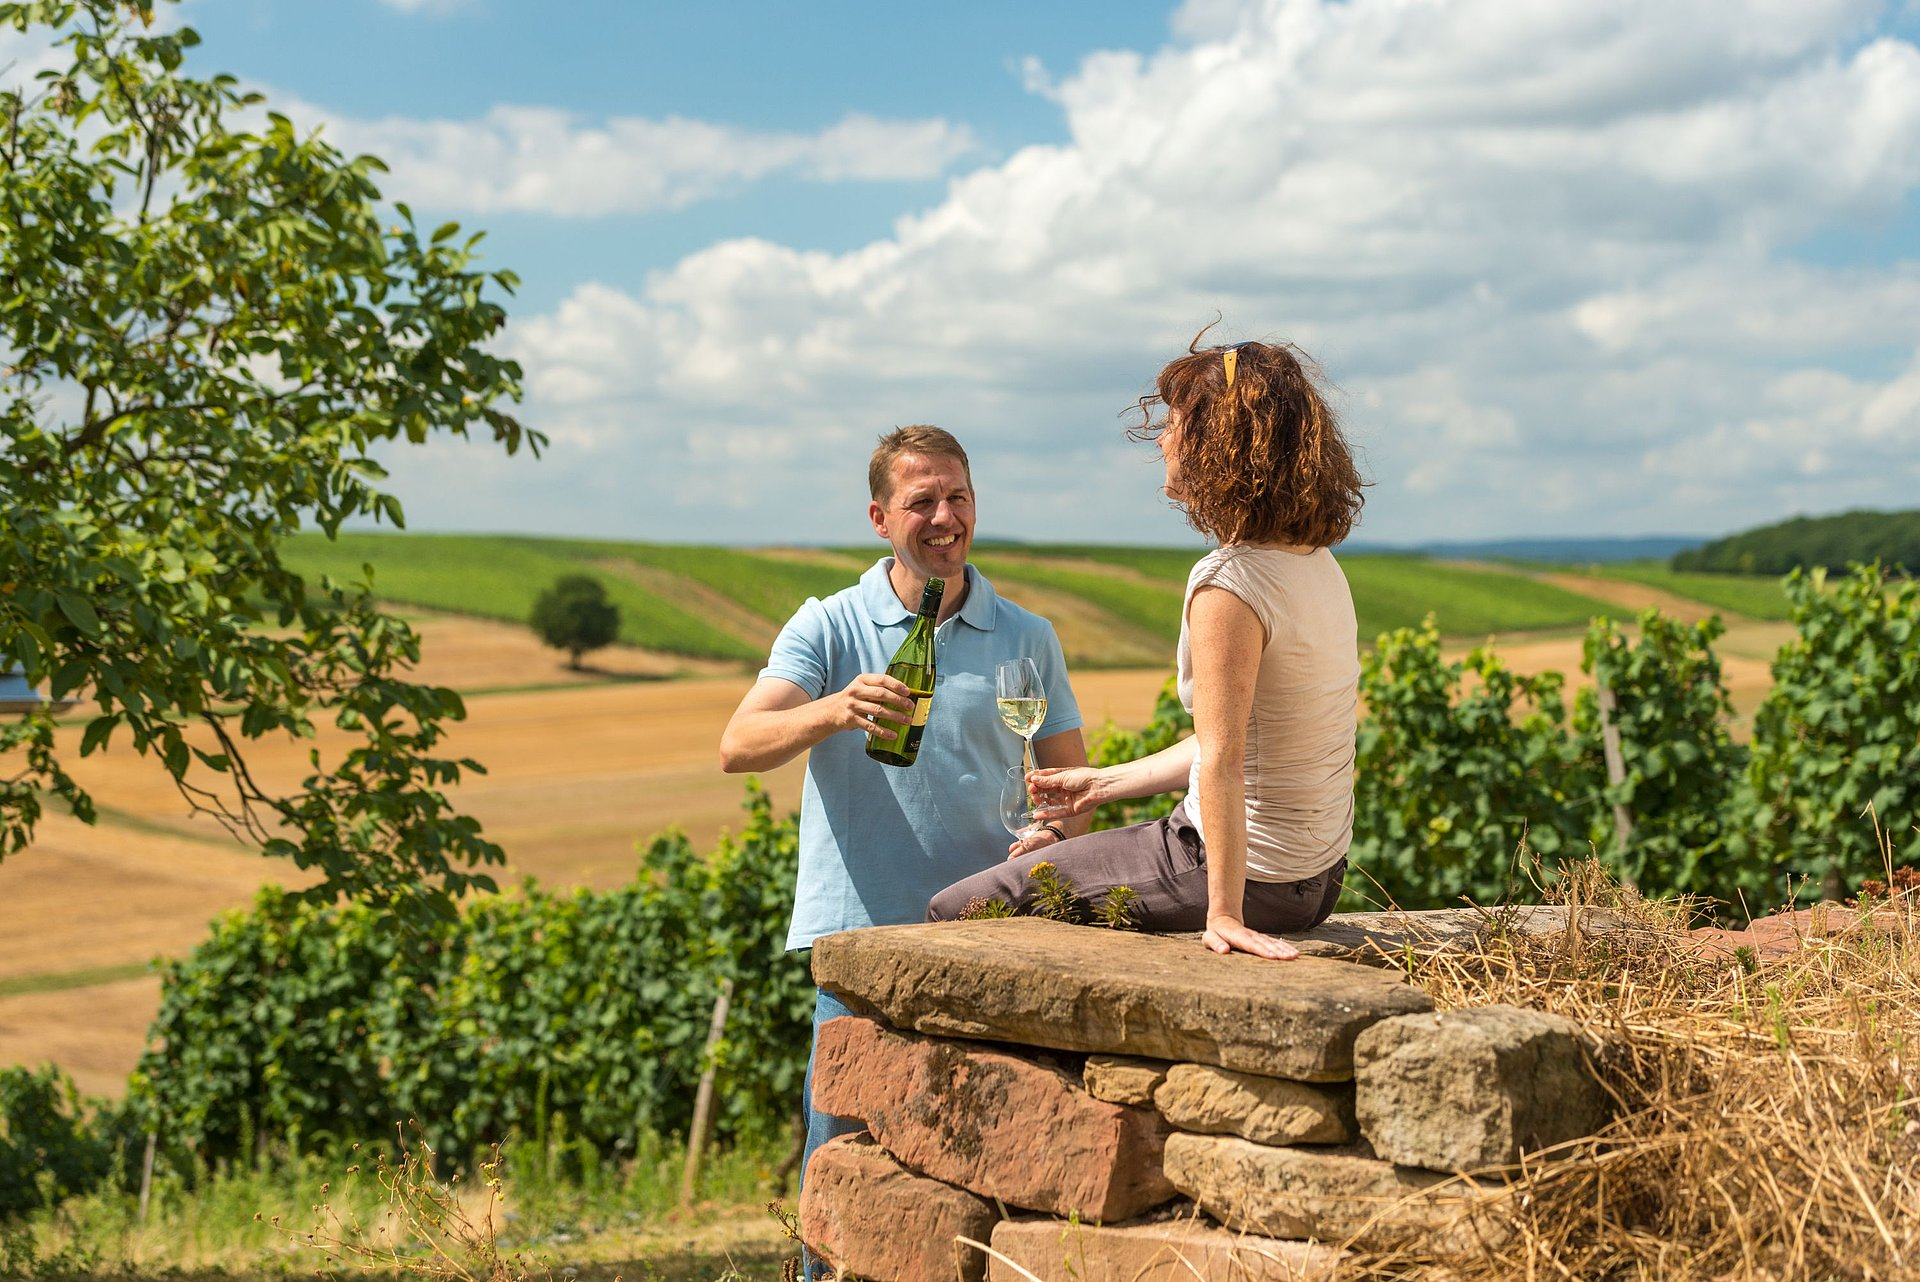 Enjoy wine in the Nahe valley